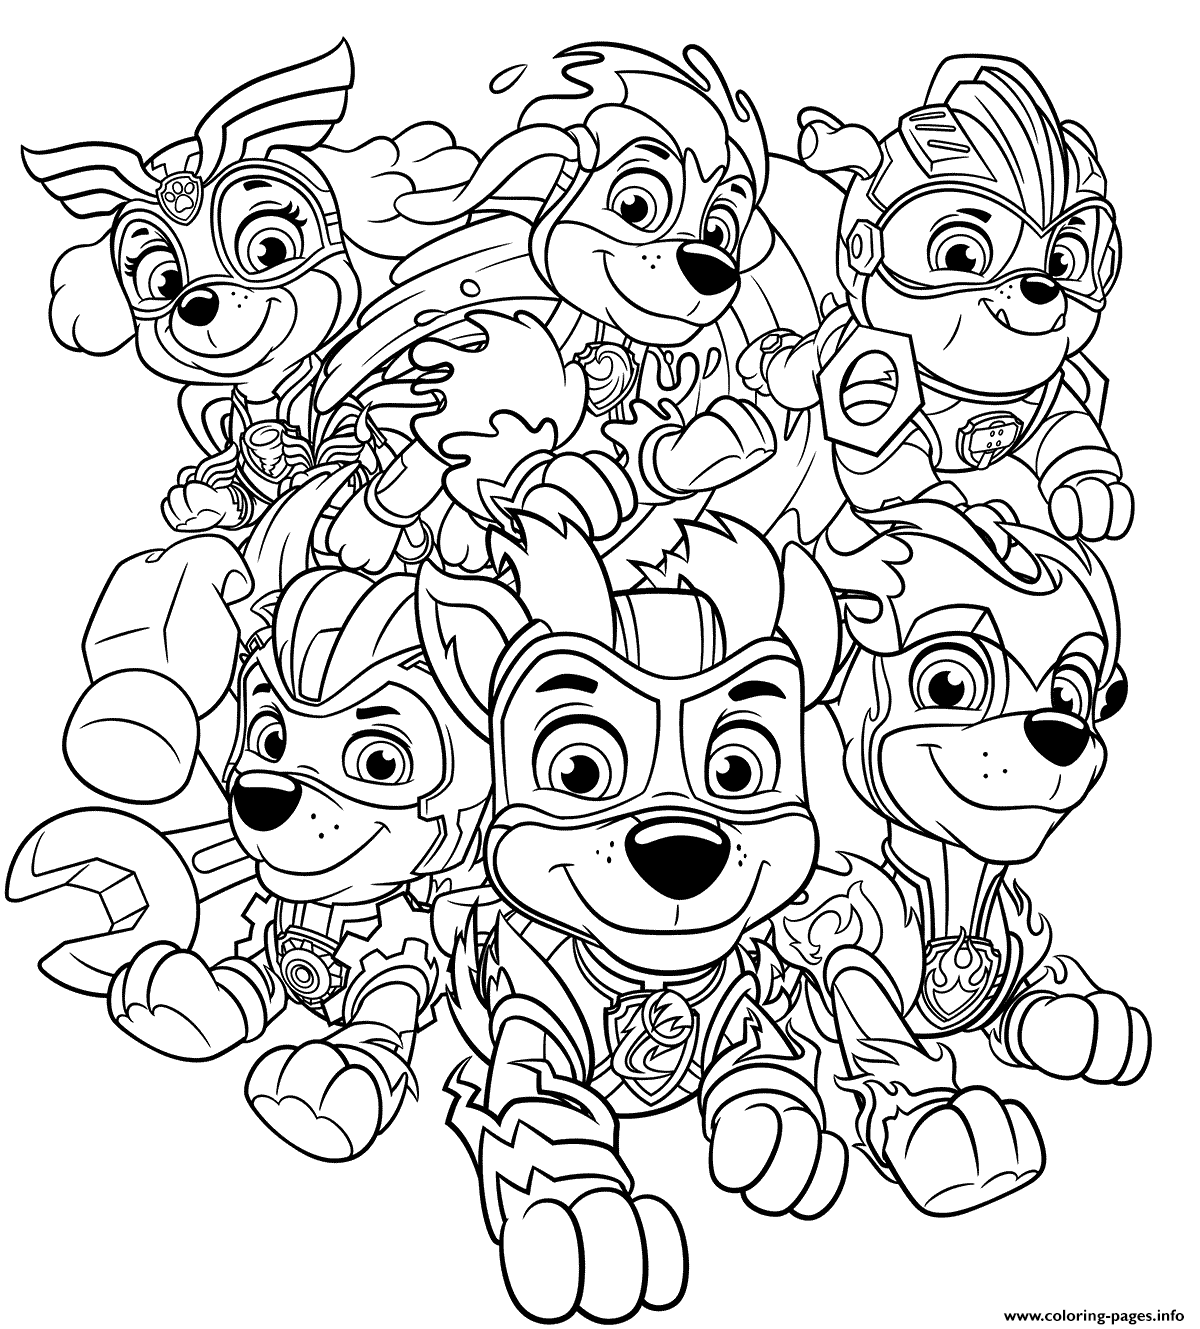 Print Mighty Pups Charged Up Coloring Pages Paw Patrol Coloring Paw Patrol Coloring Pages Cartoon Coloring Pages